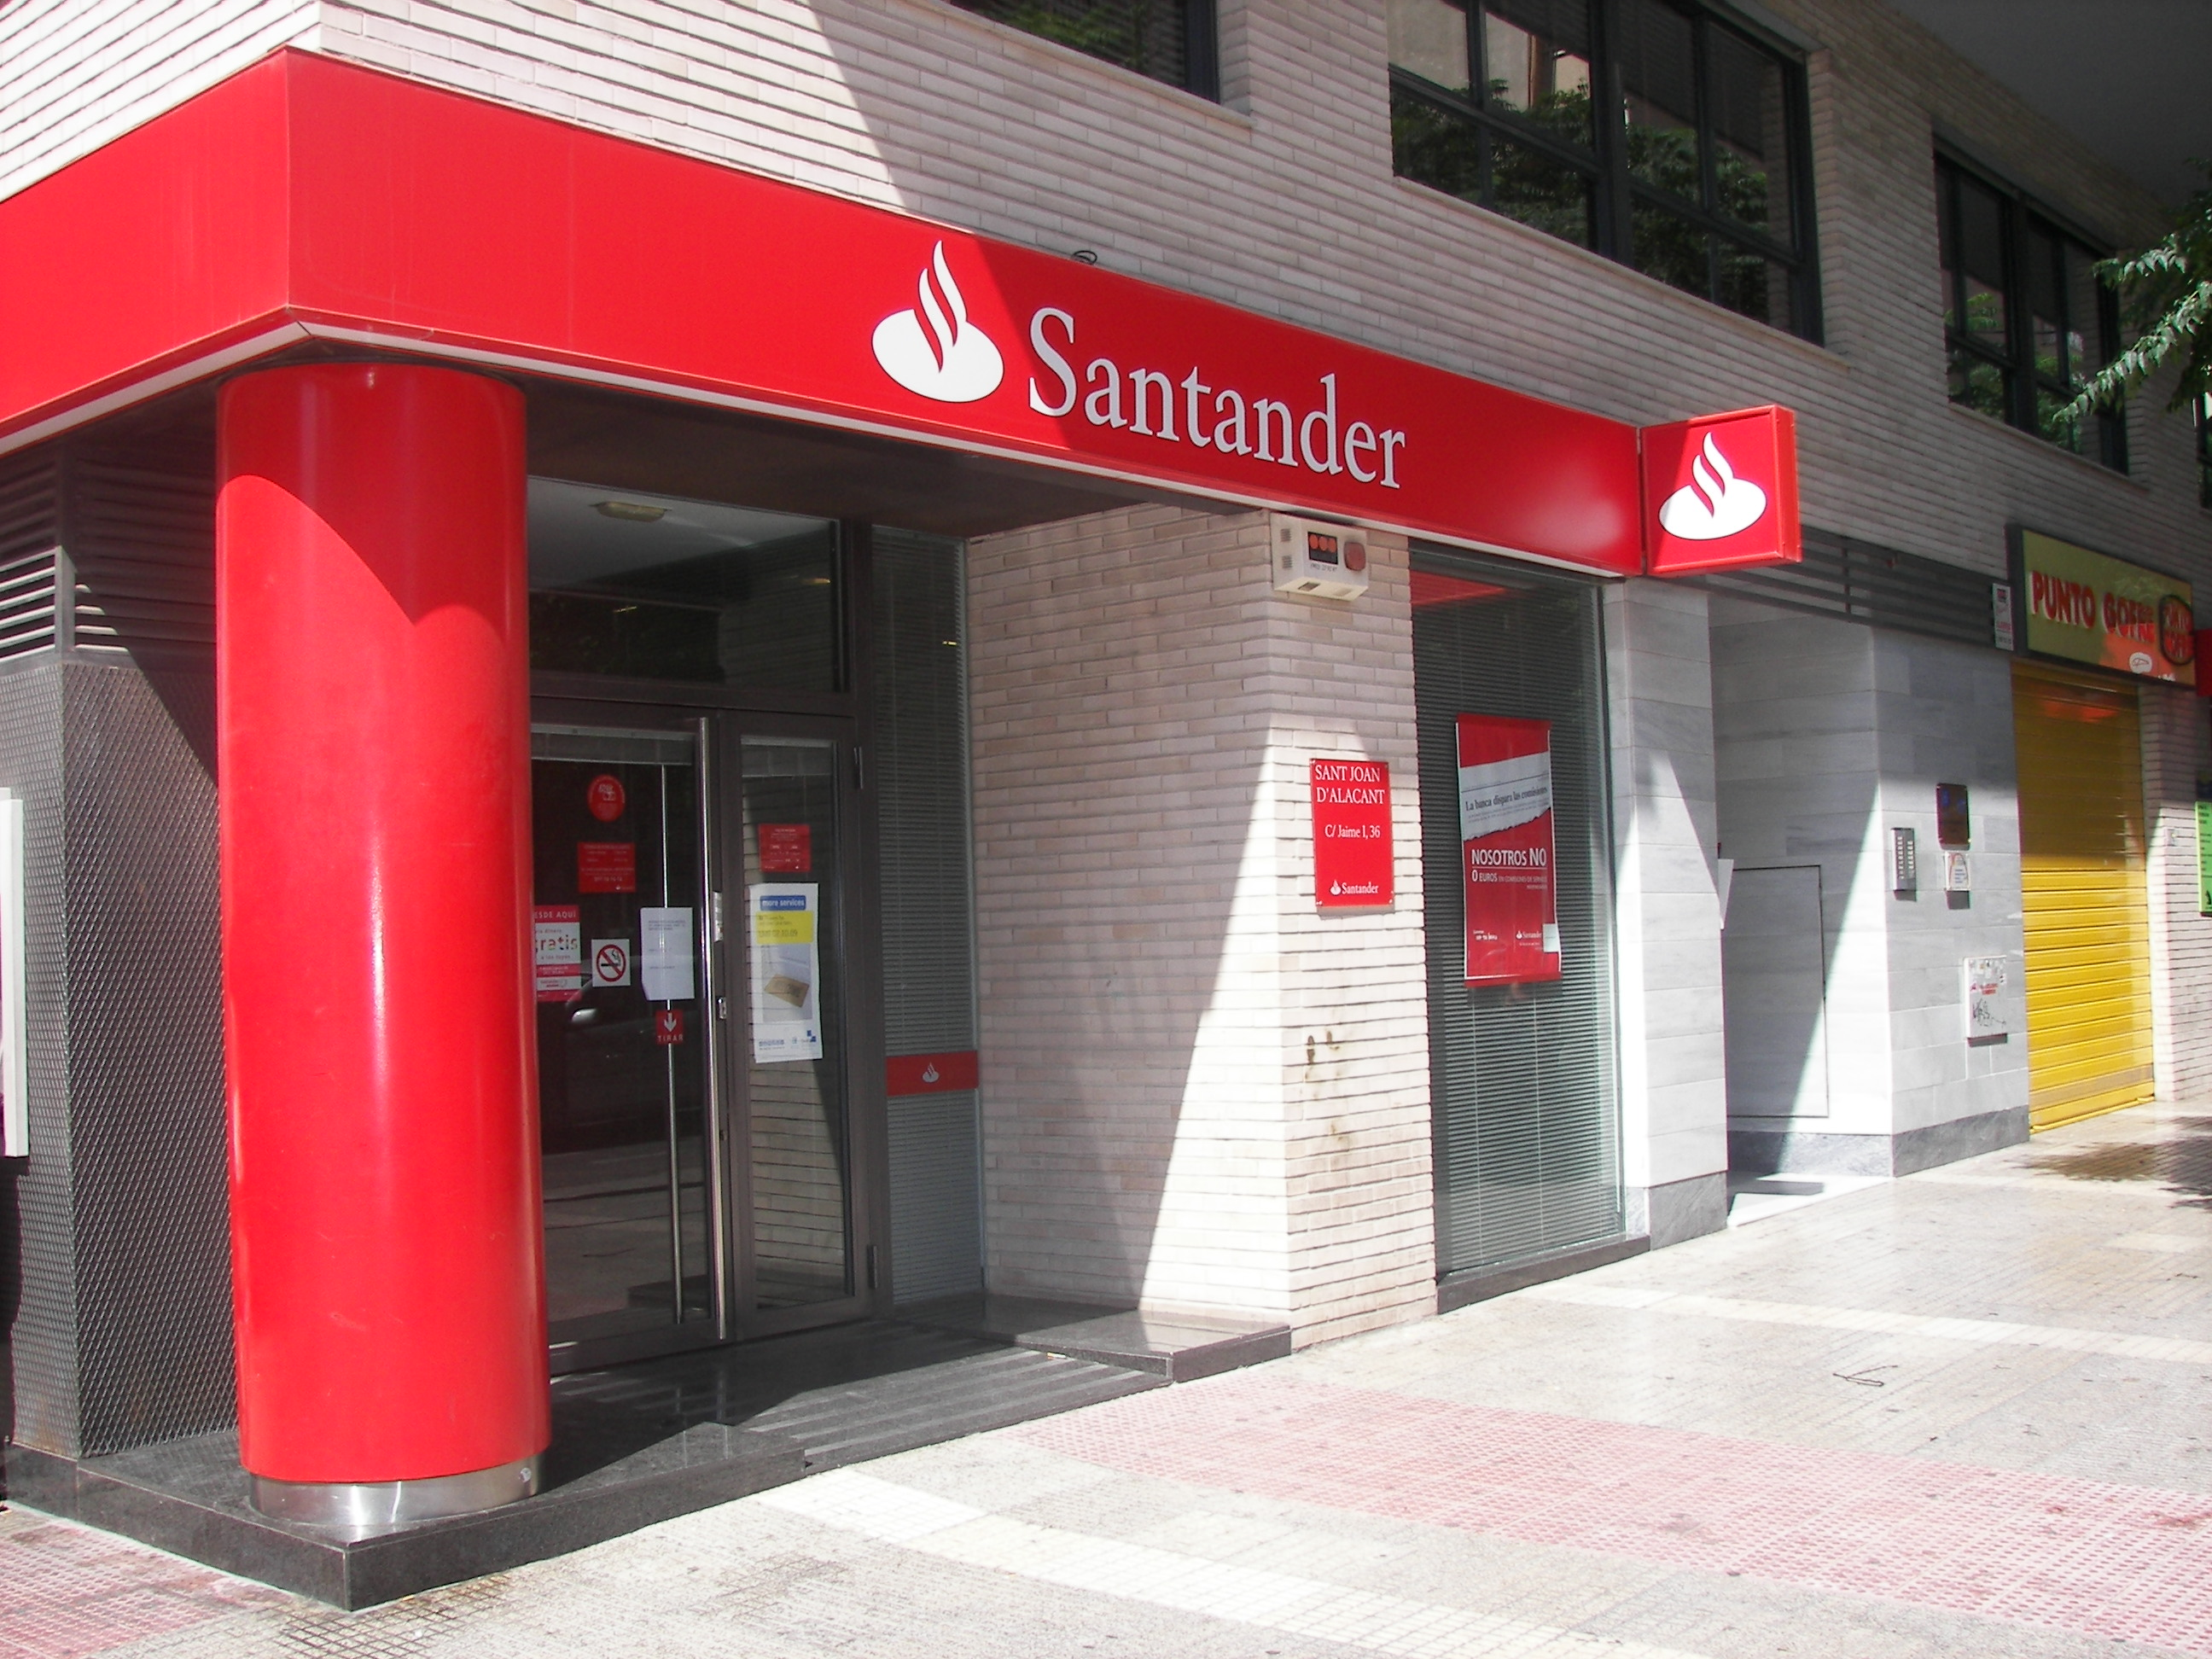 Bsch banco santander central hispano ajuntament de sant for Banco santander oficinas